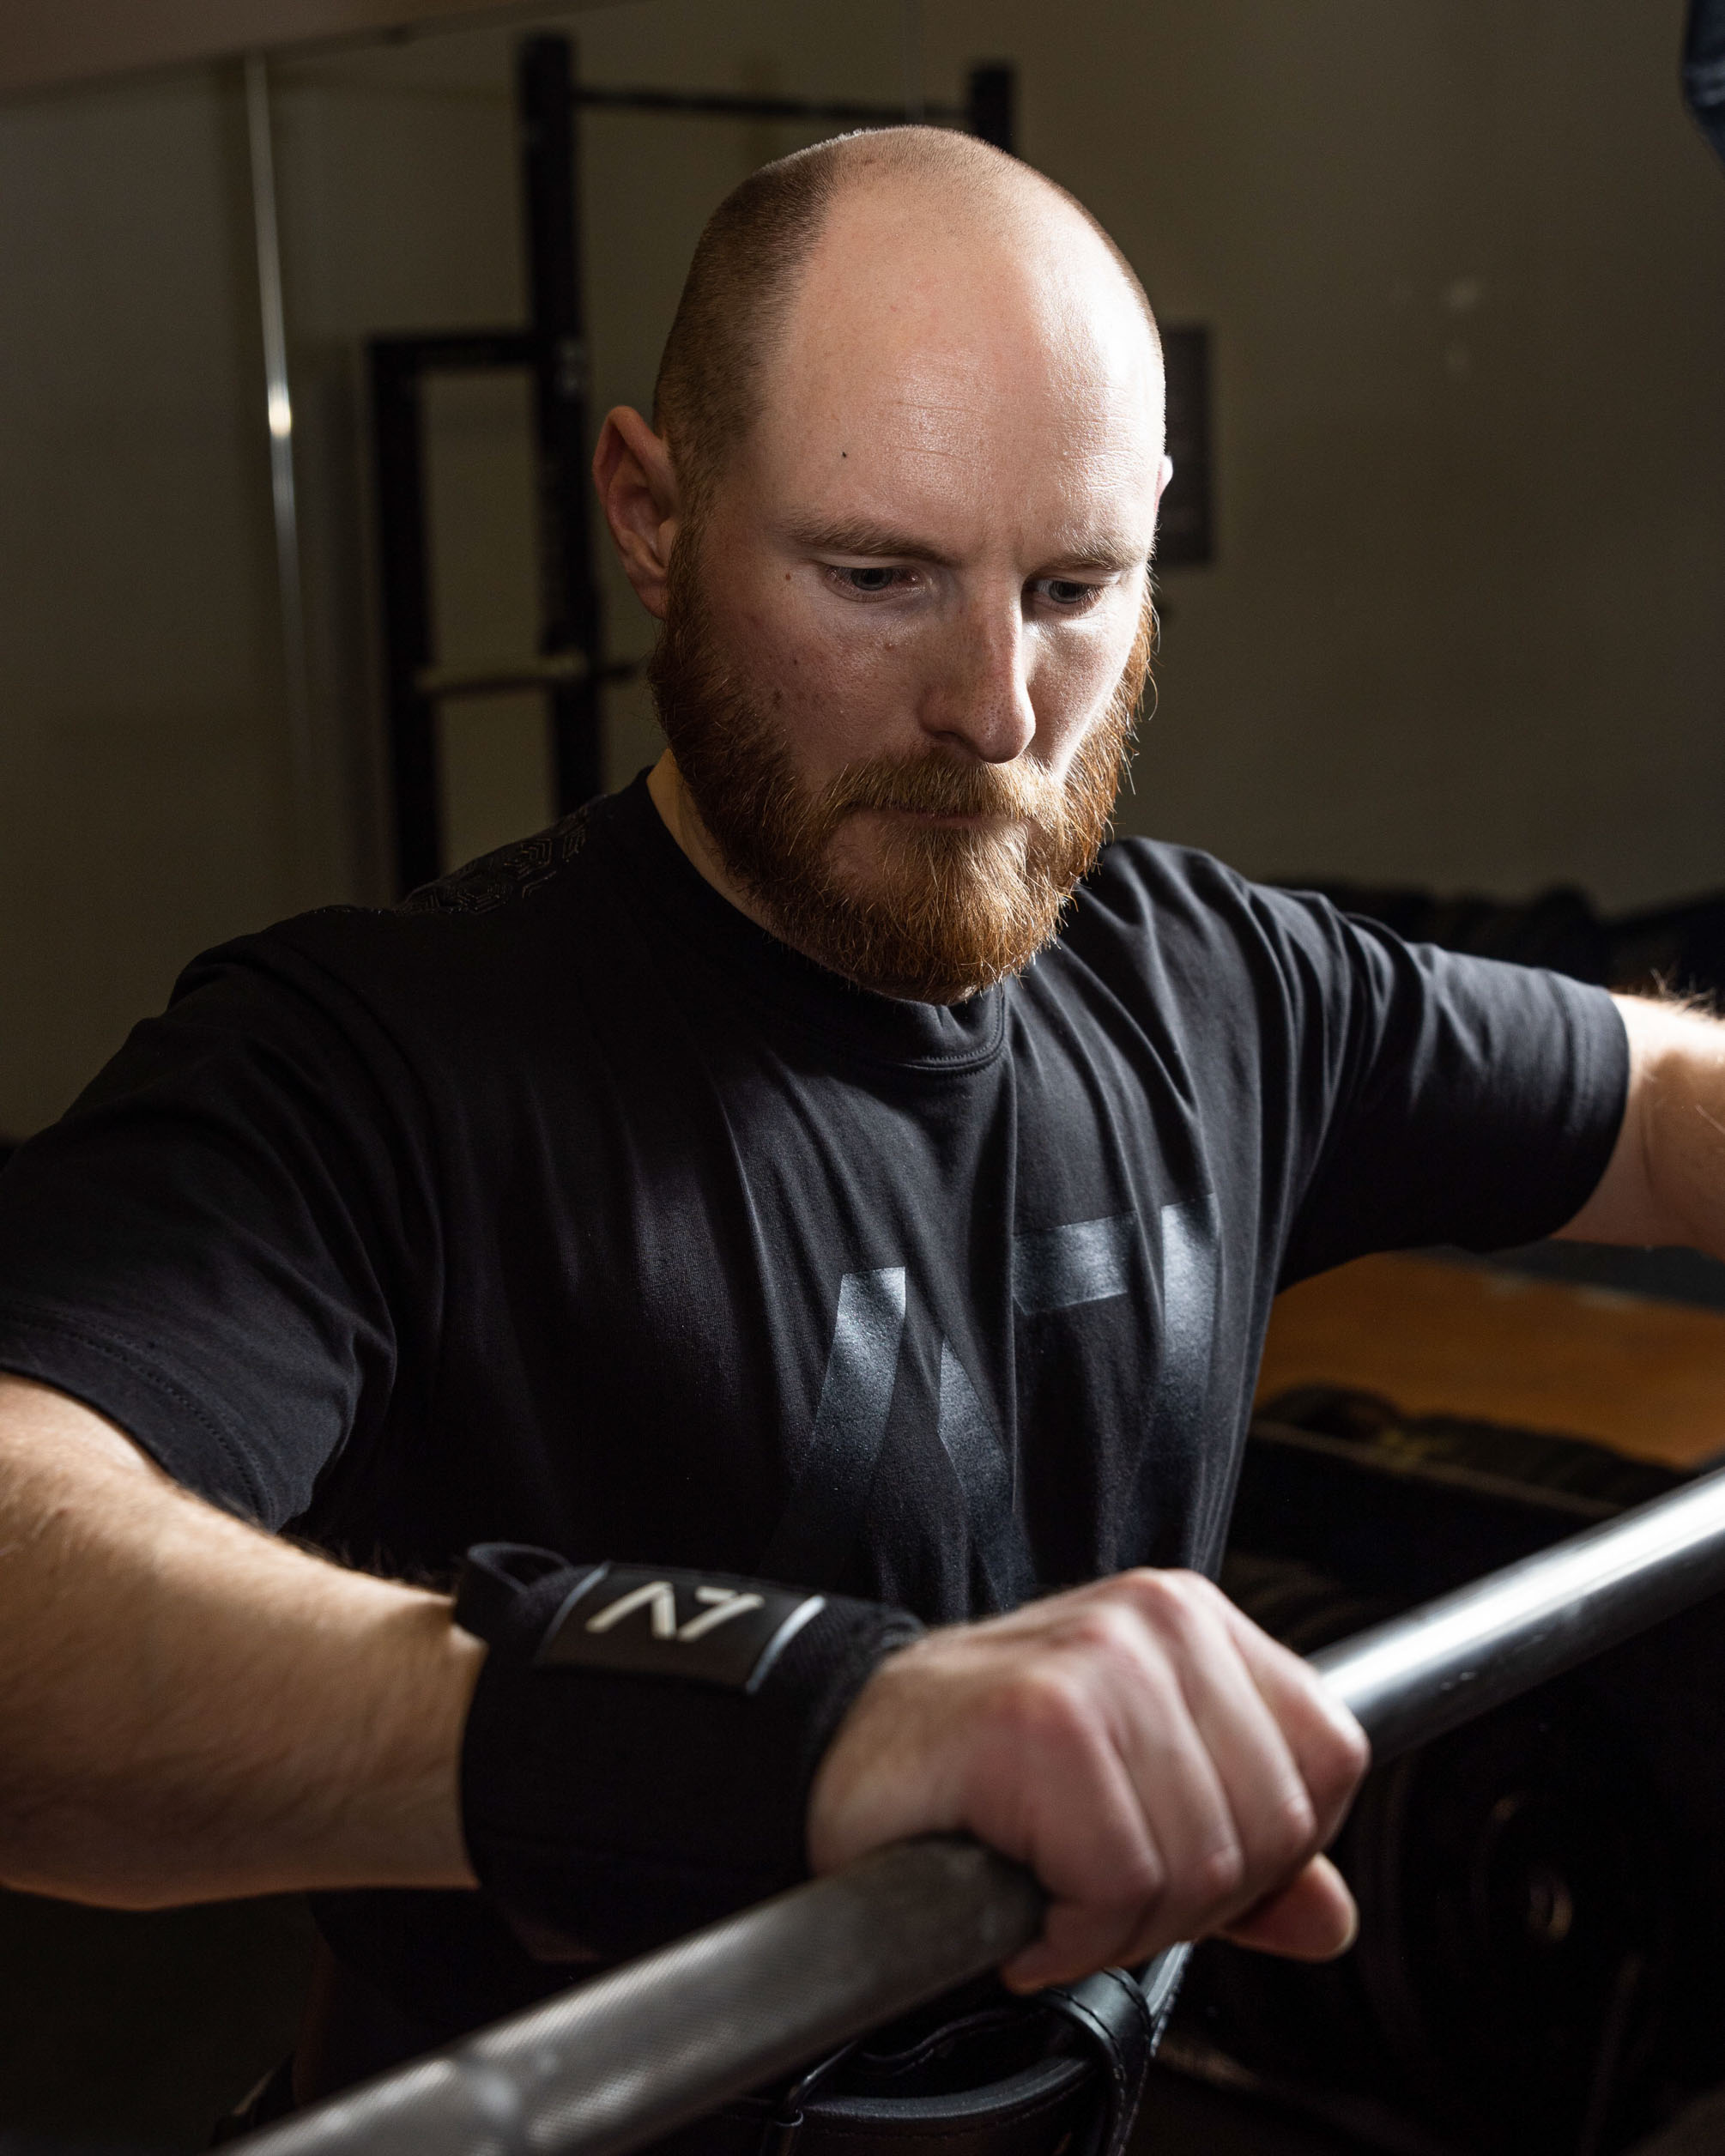 Weightlifting gear and accessories